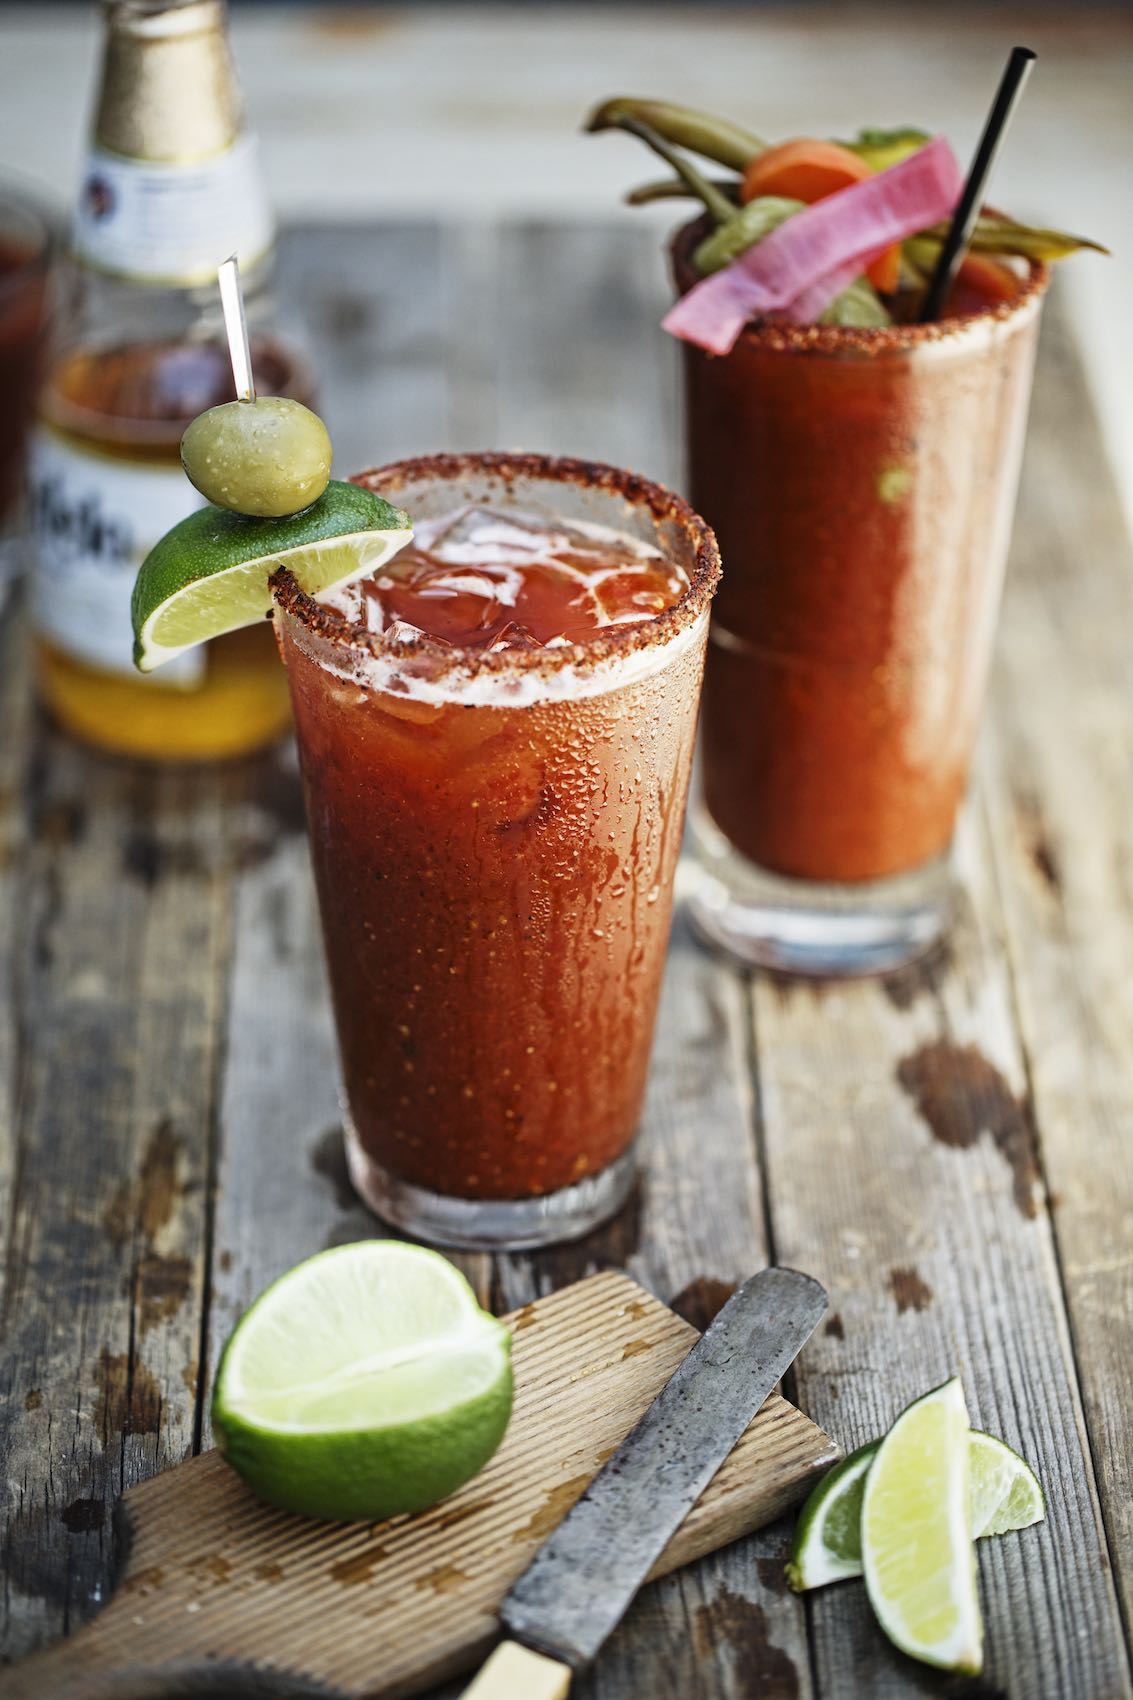 Jody Horton Photography - Bloody Mary, michelada and Modelo Especial on wood table at Smoke for Rizzoli Books.